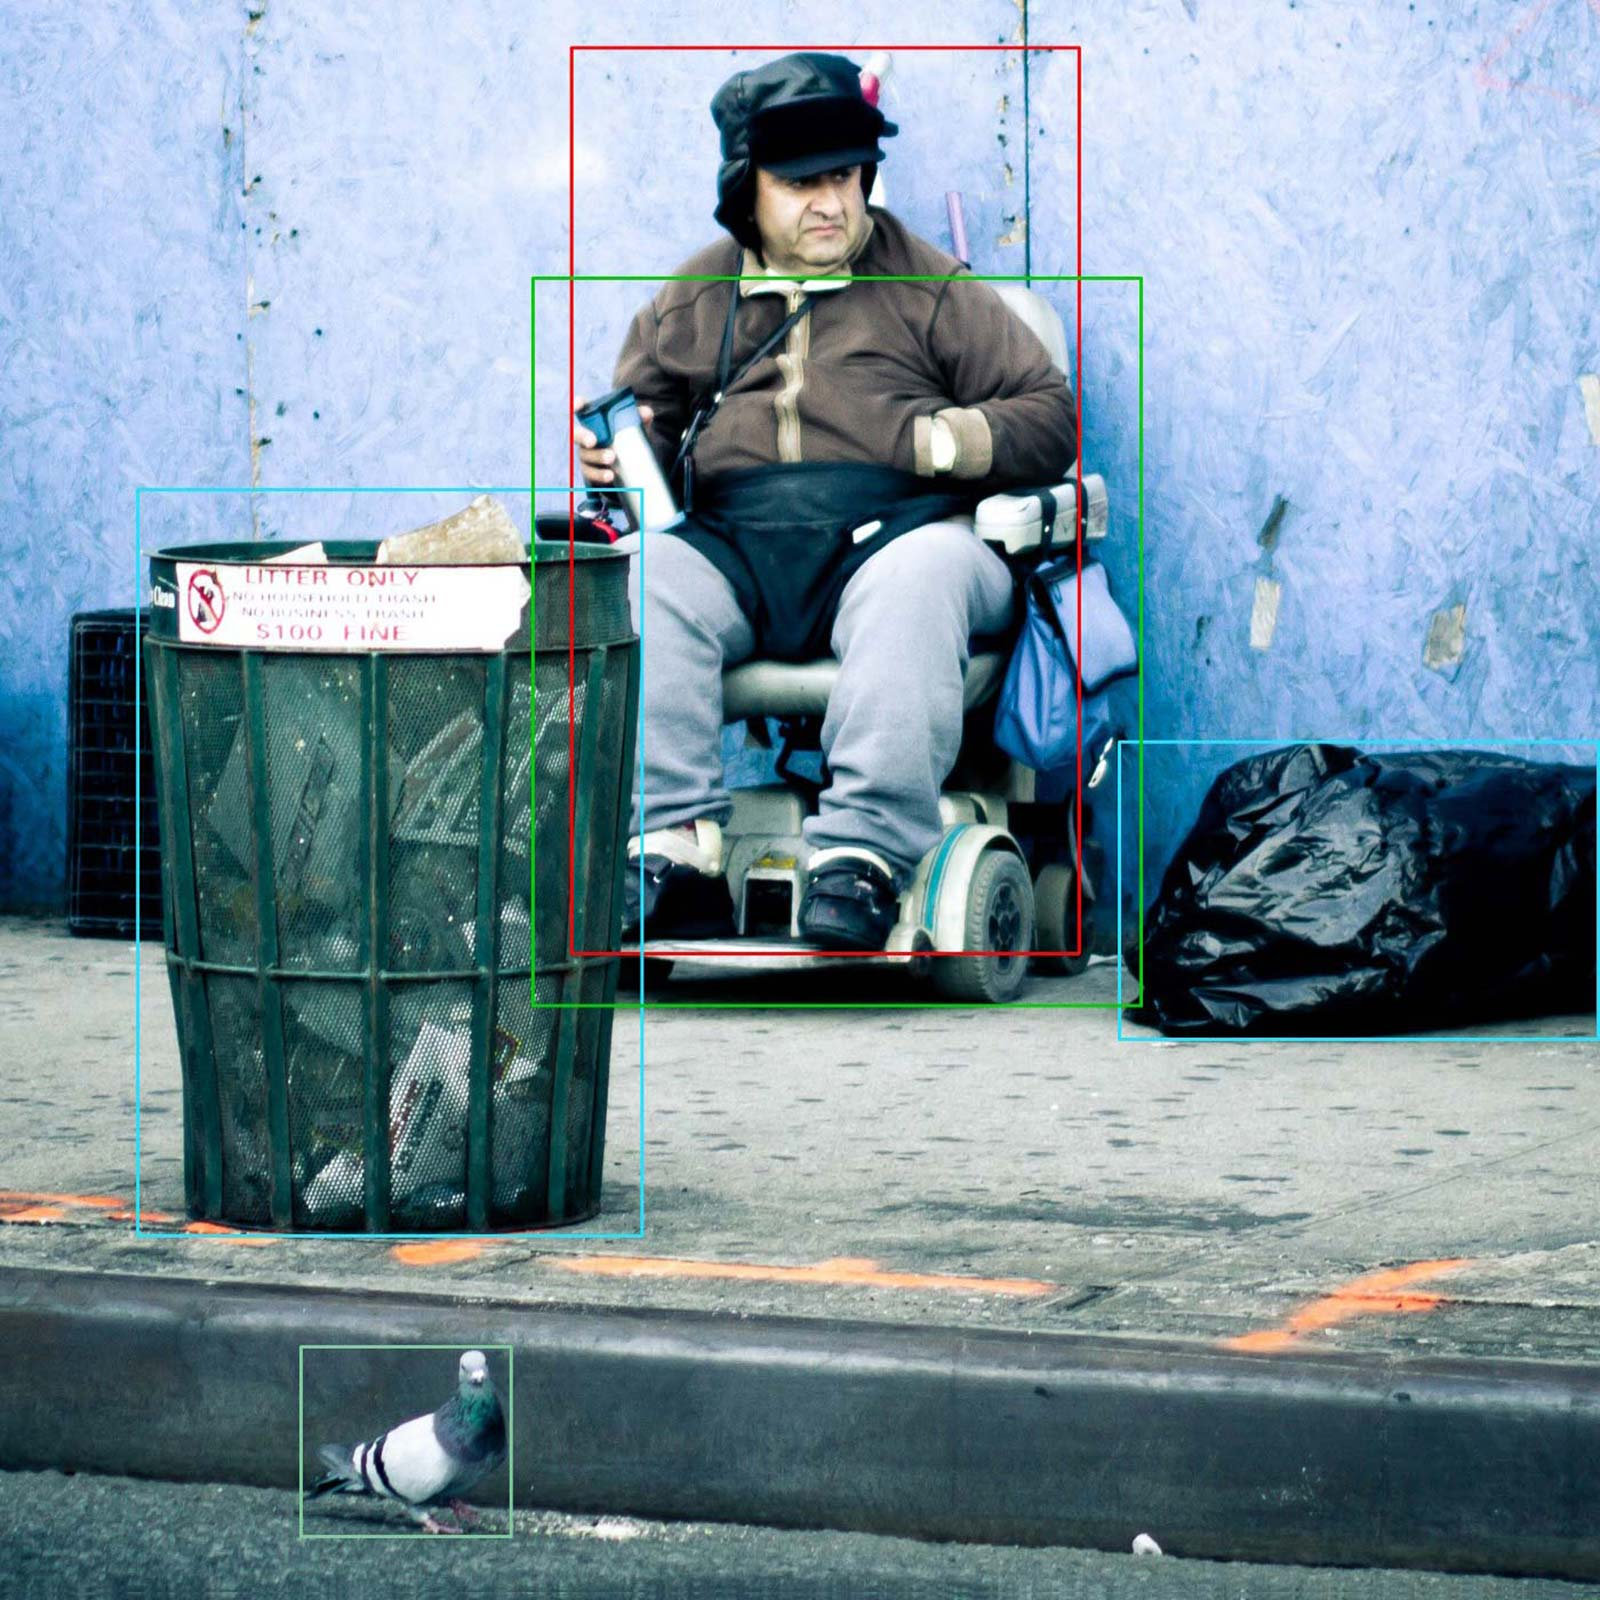 A man in a wheelchair, annotated image with right classification